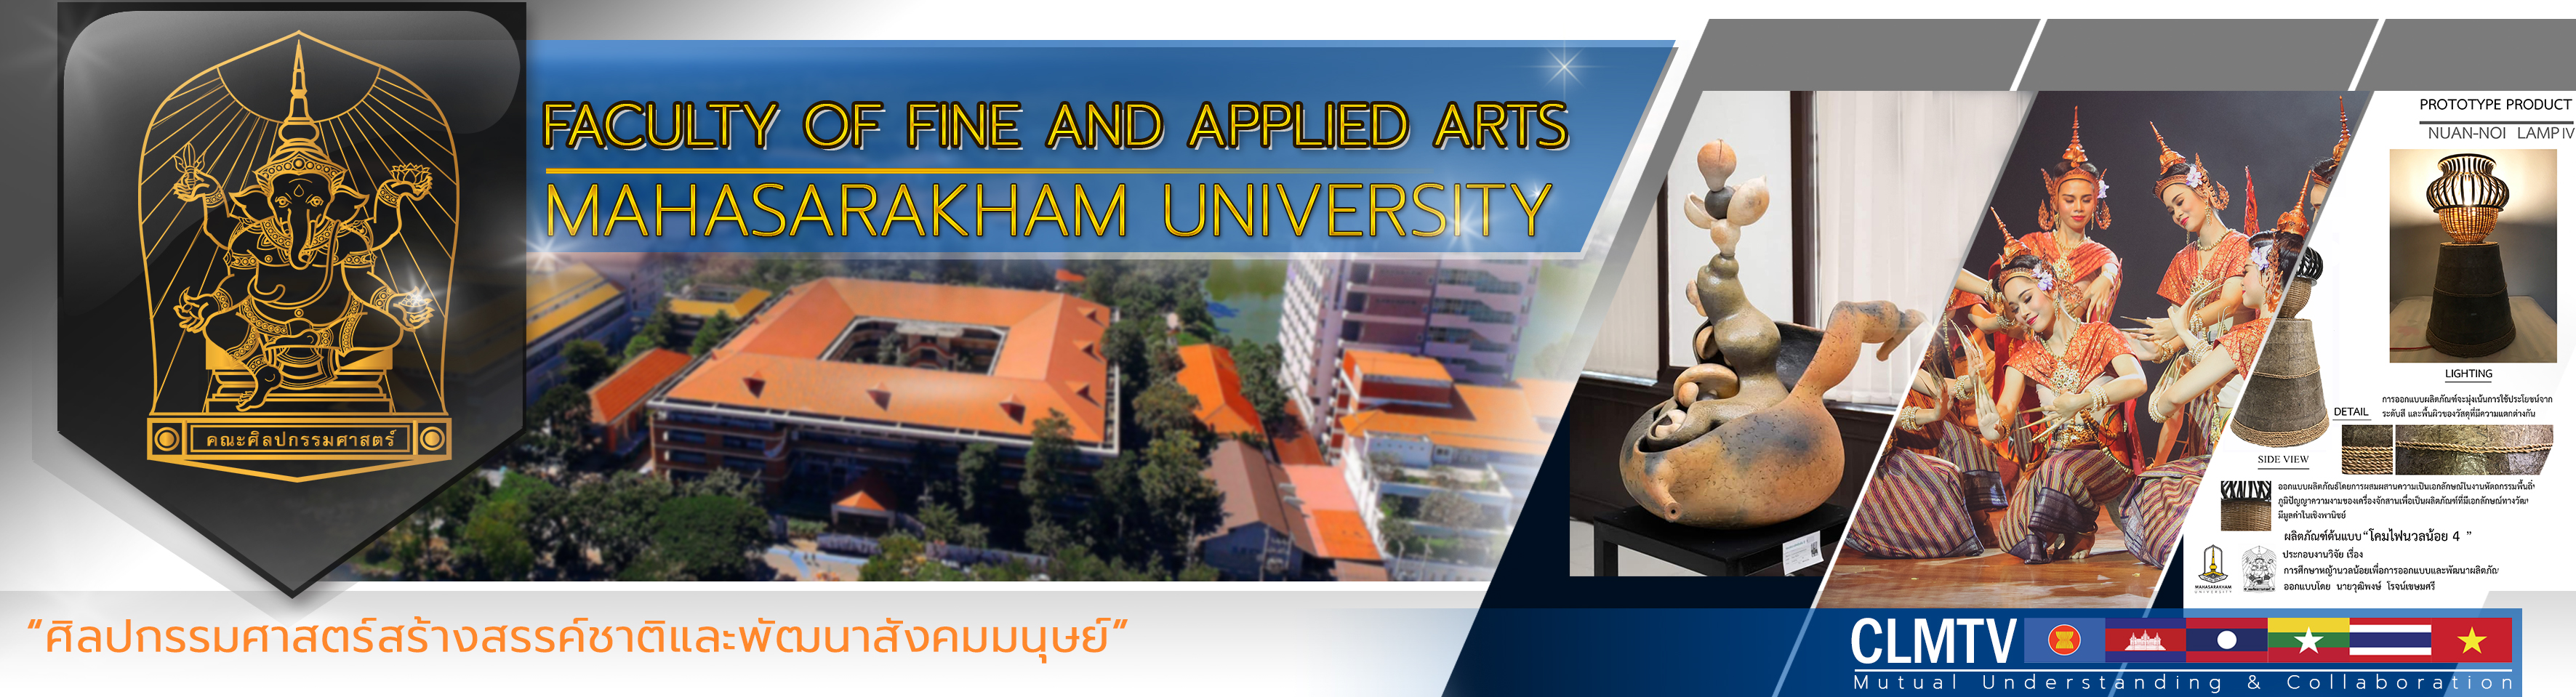 Faculty of Fine and Applied Arts Mahasarakham University